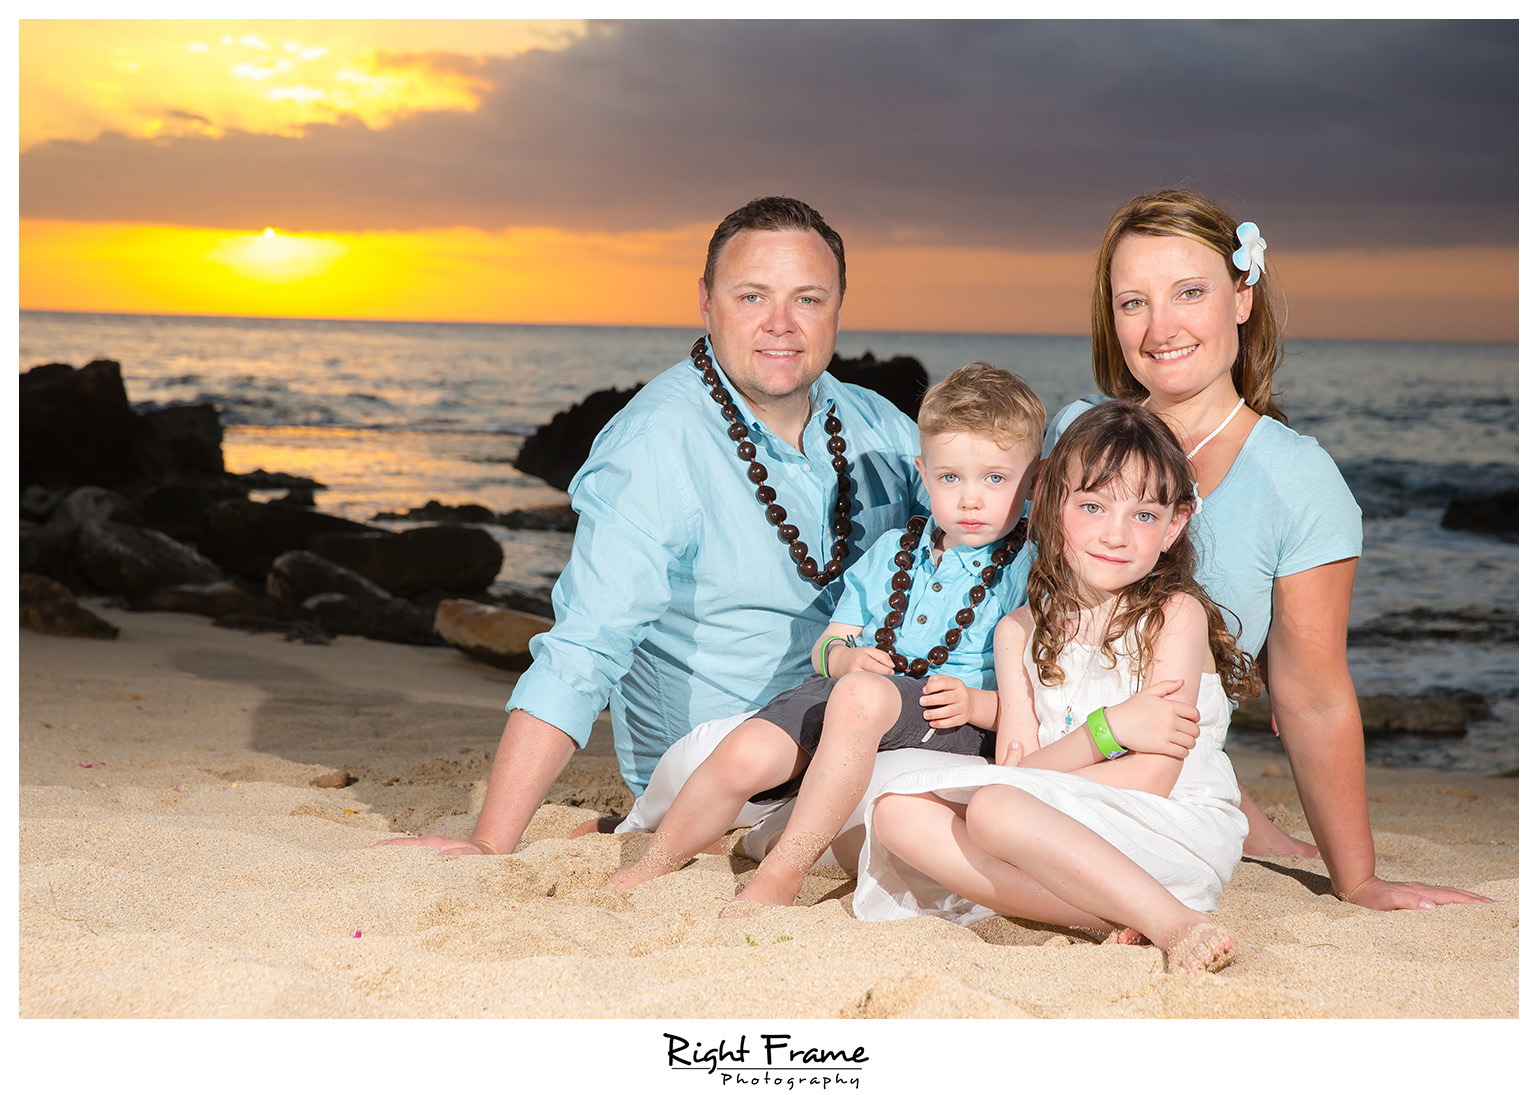 Beautiful Sunset Family Beach Session at Ko'Olina